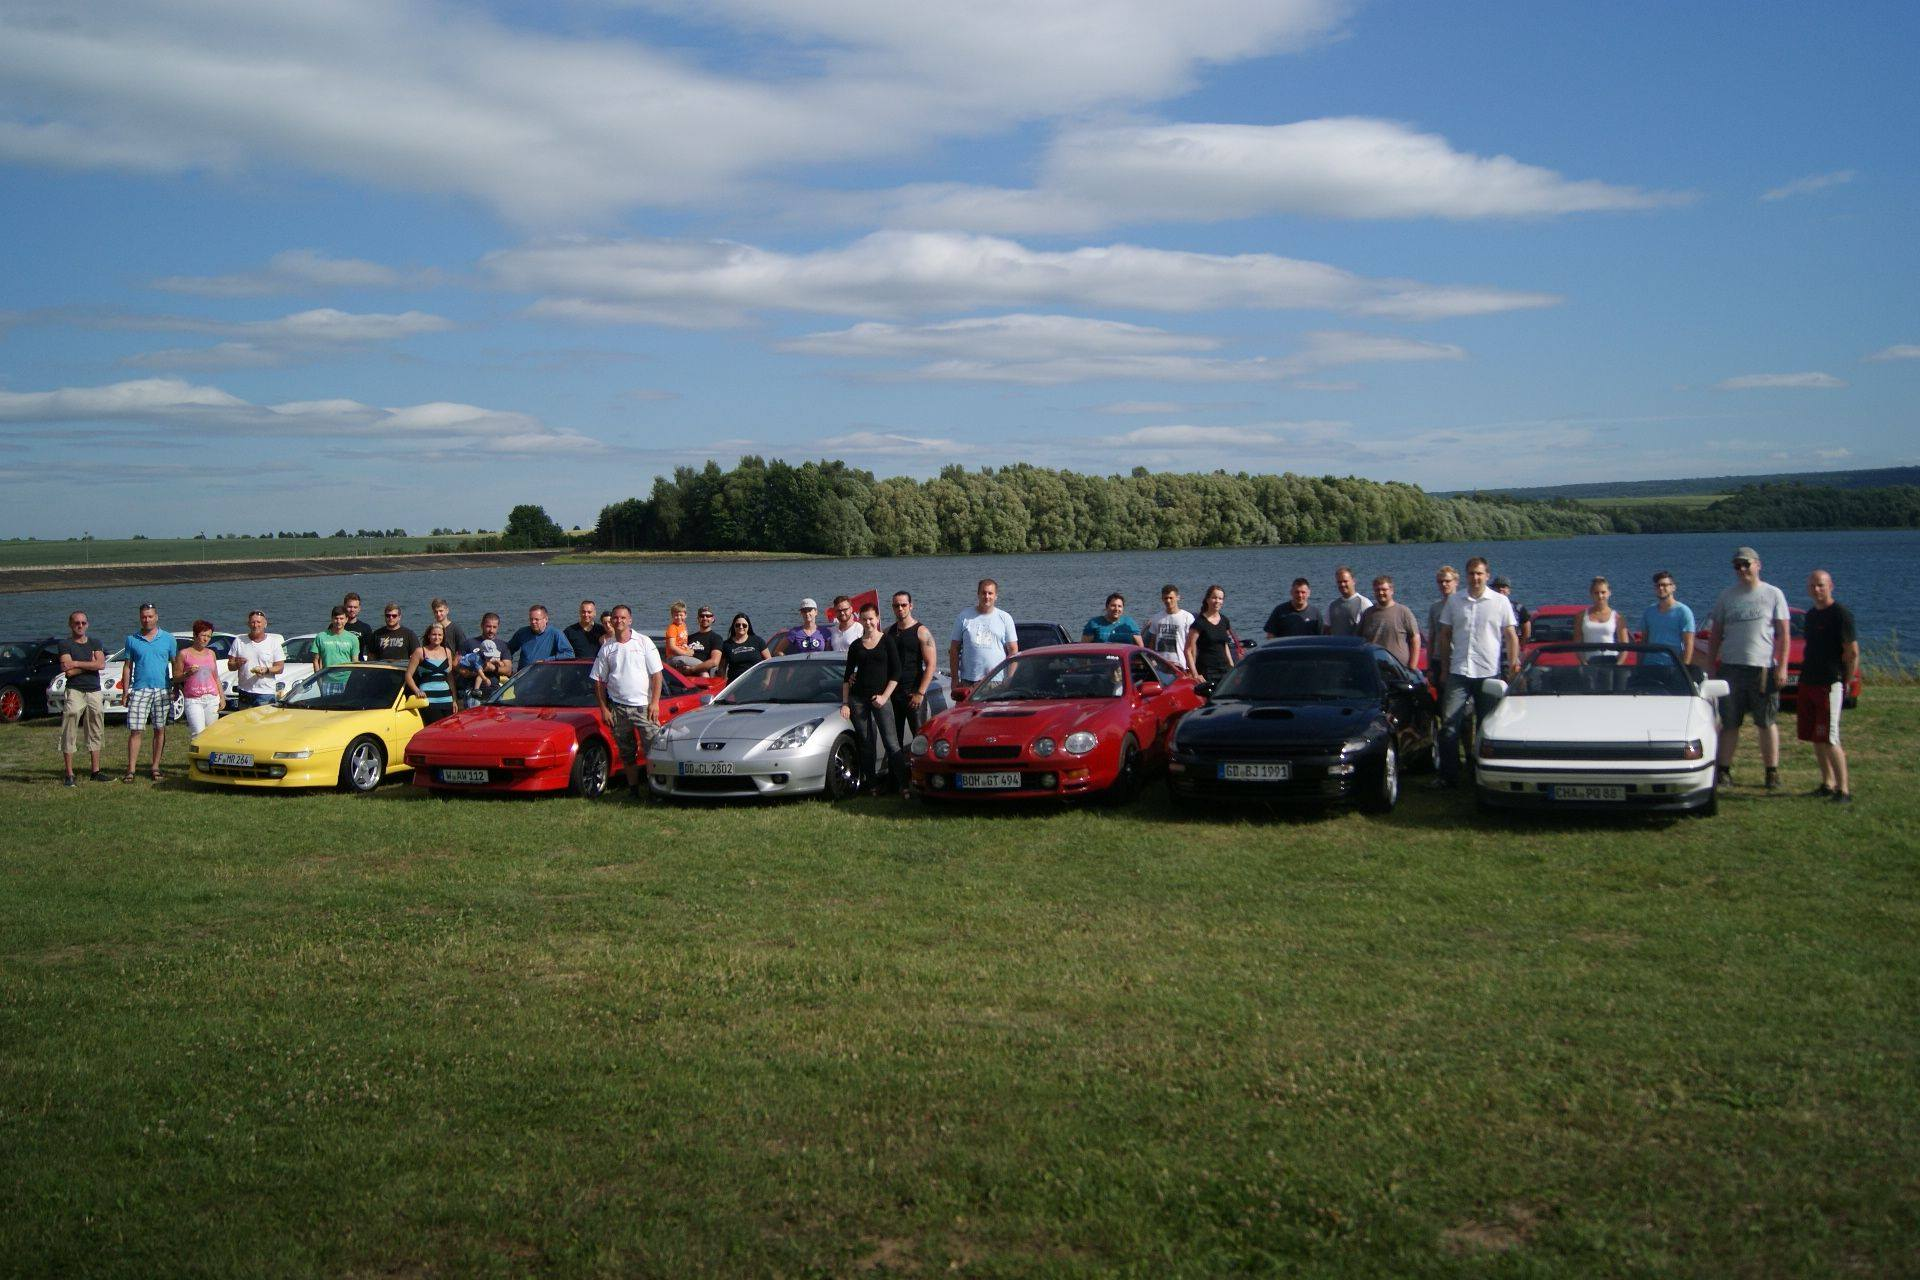 5. Celica Owners, MR2, Supra Treffen